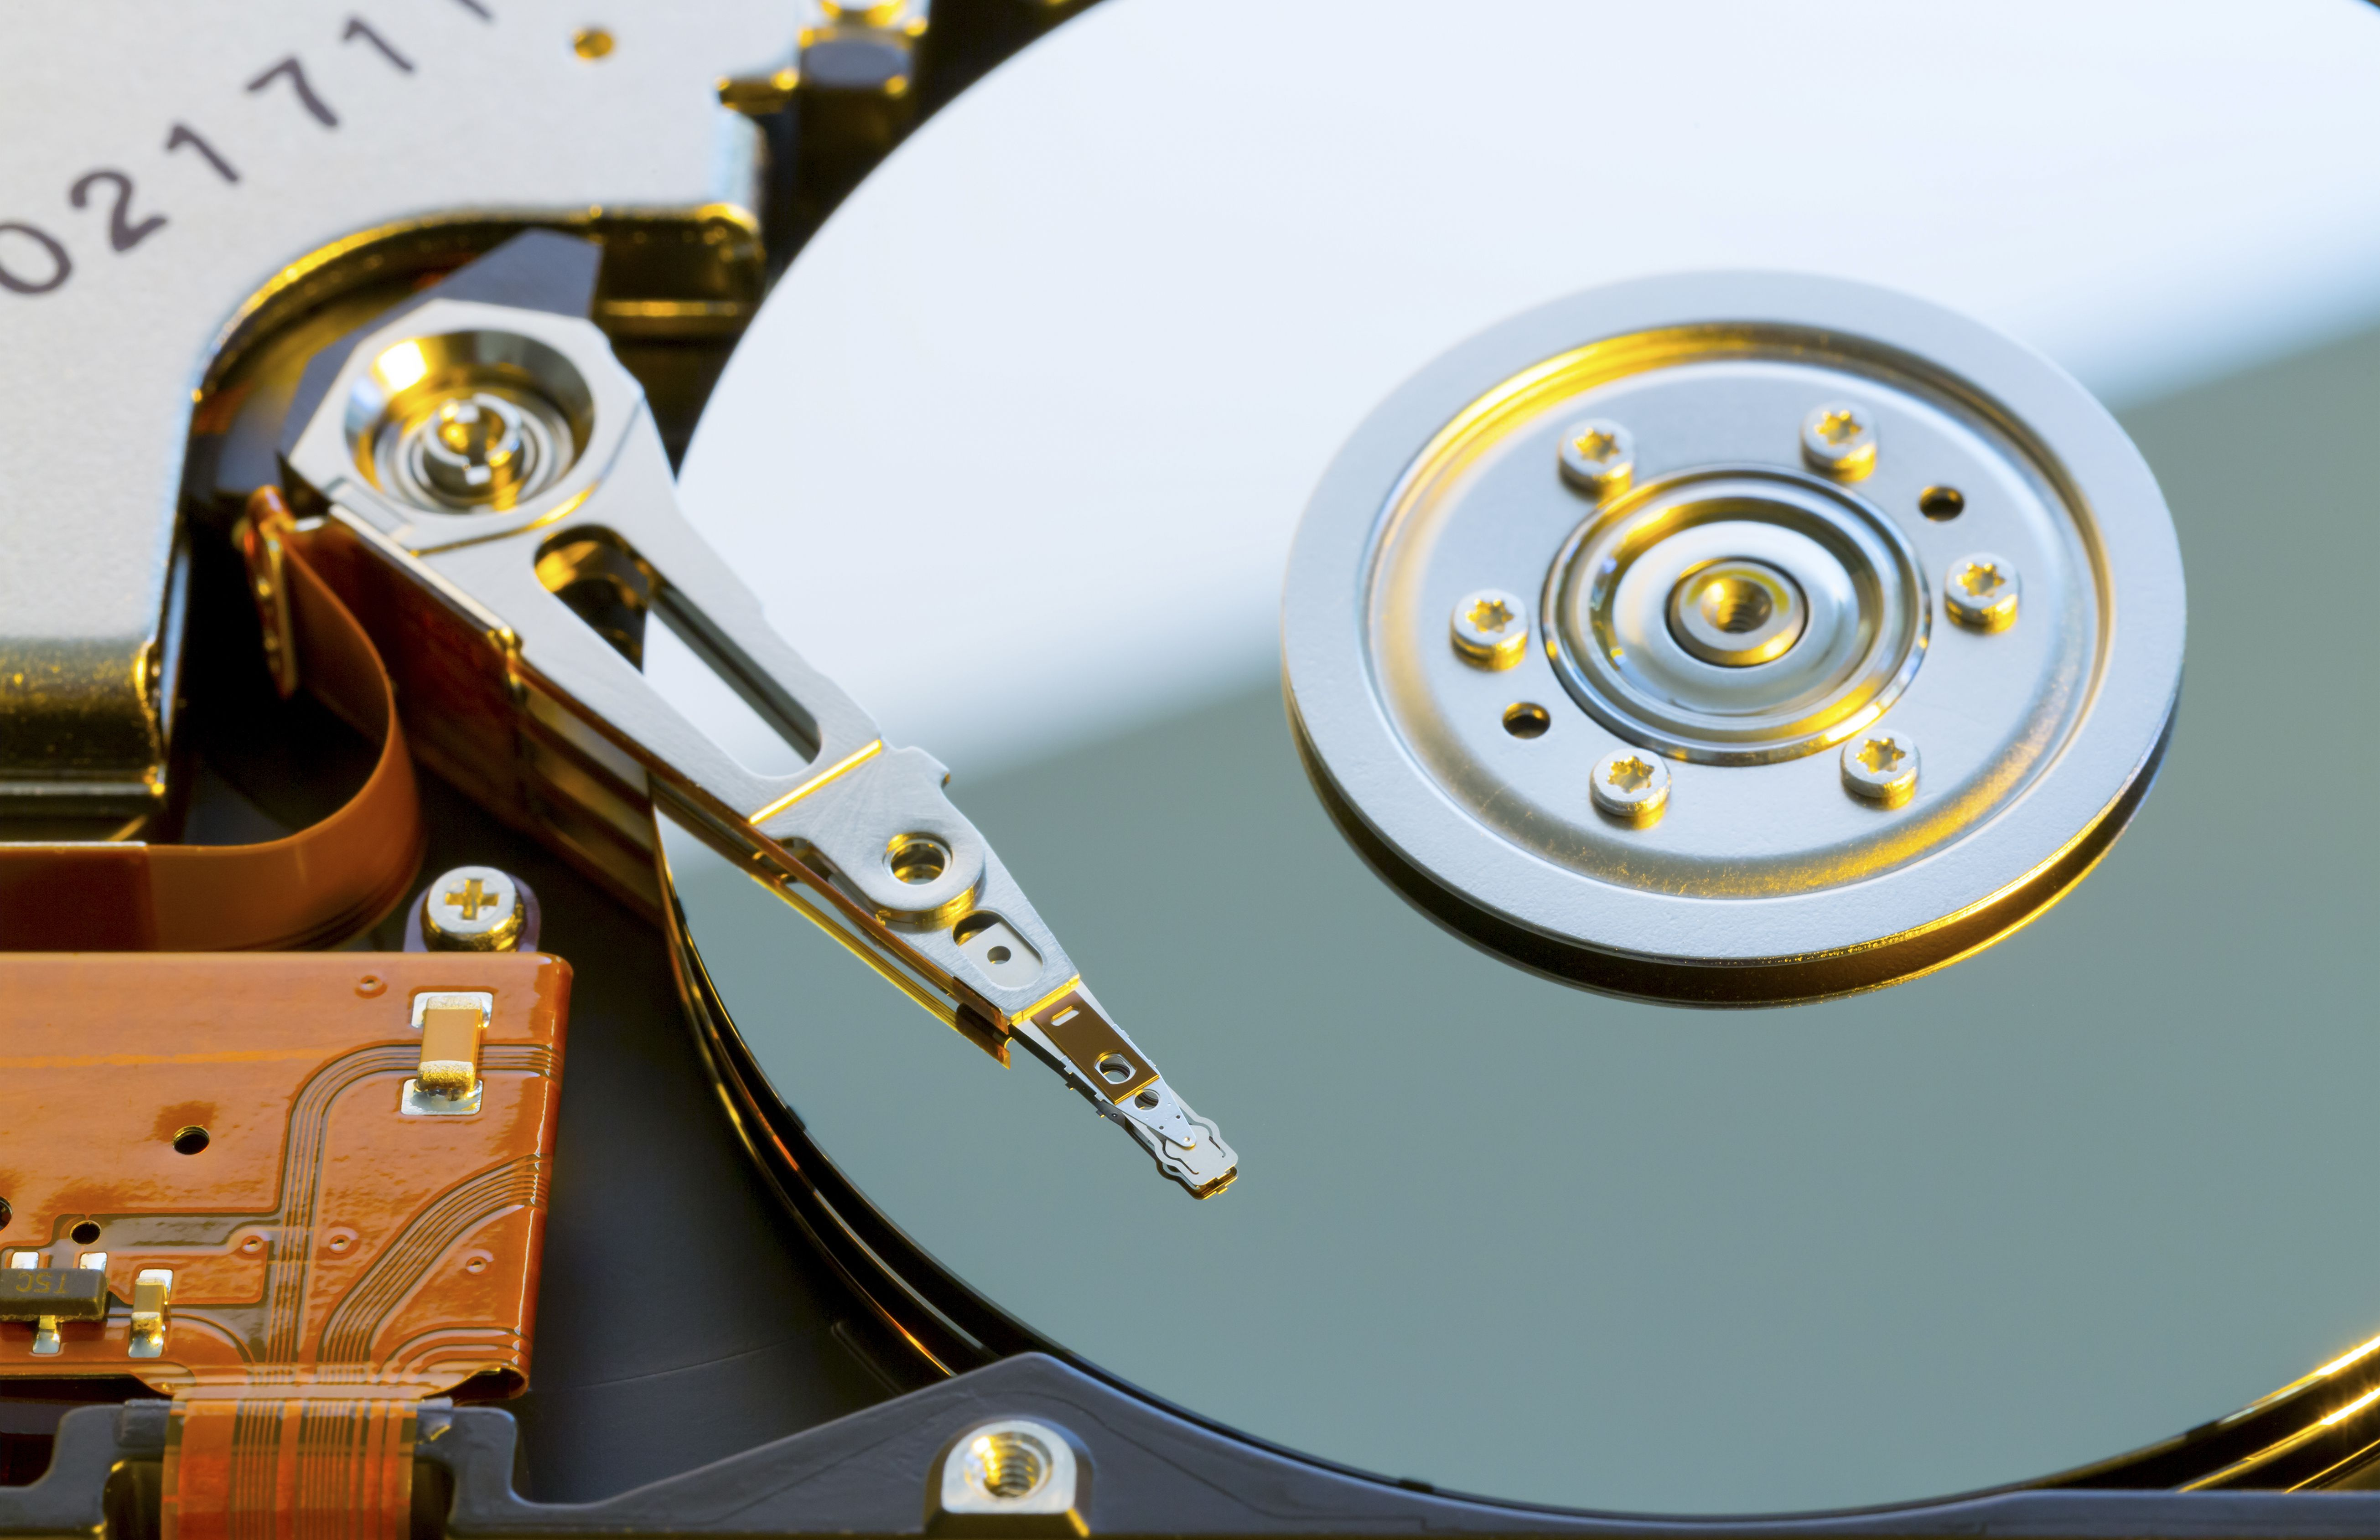 How to Format a Hard Drive (Windows 10, 8, 7, Vista, XP)